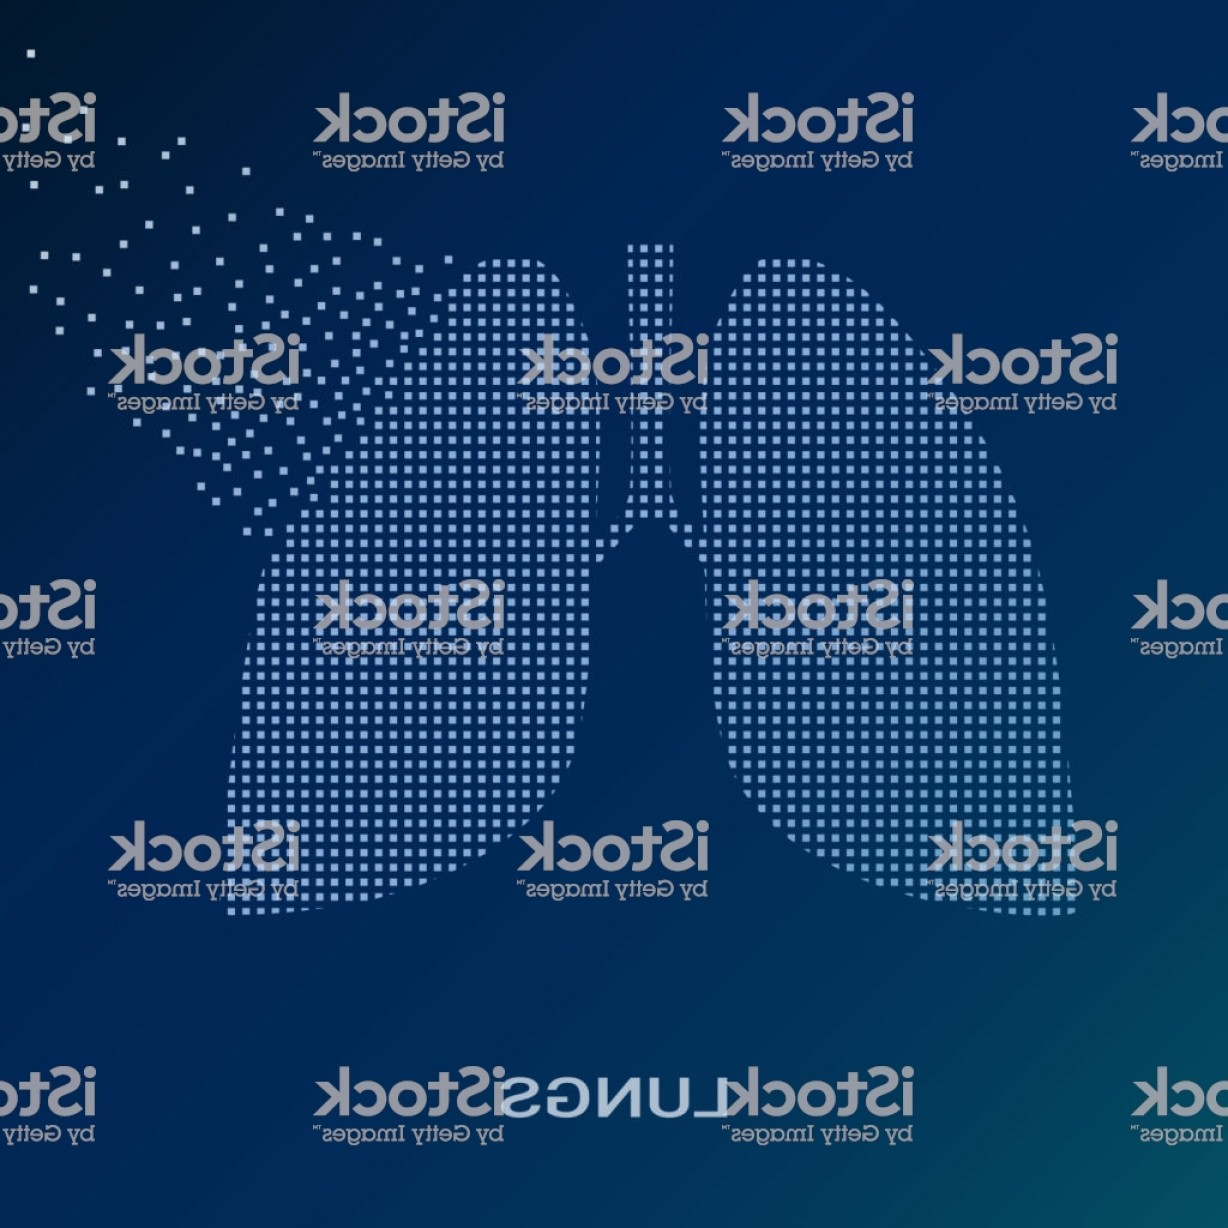 Chicago White Sox Logo Vector EPS: Abstract Vector Illustration Of Human Lungs On Blue Background Pixel Art Symbol Of Gm